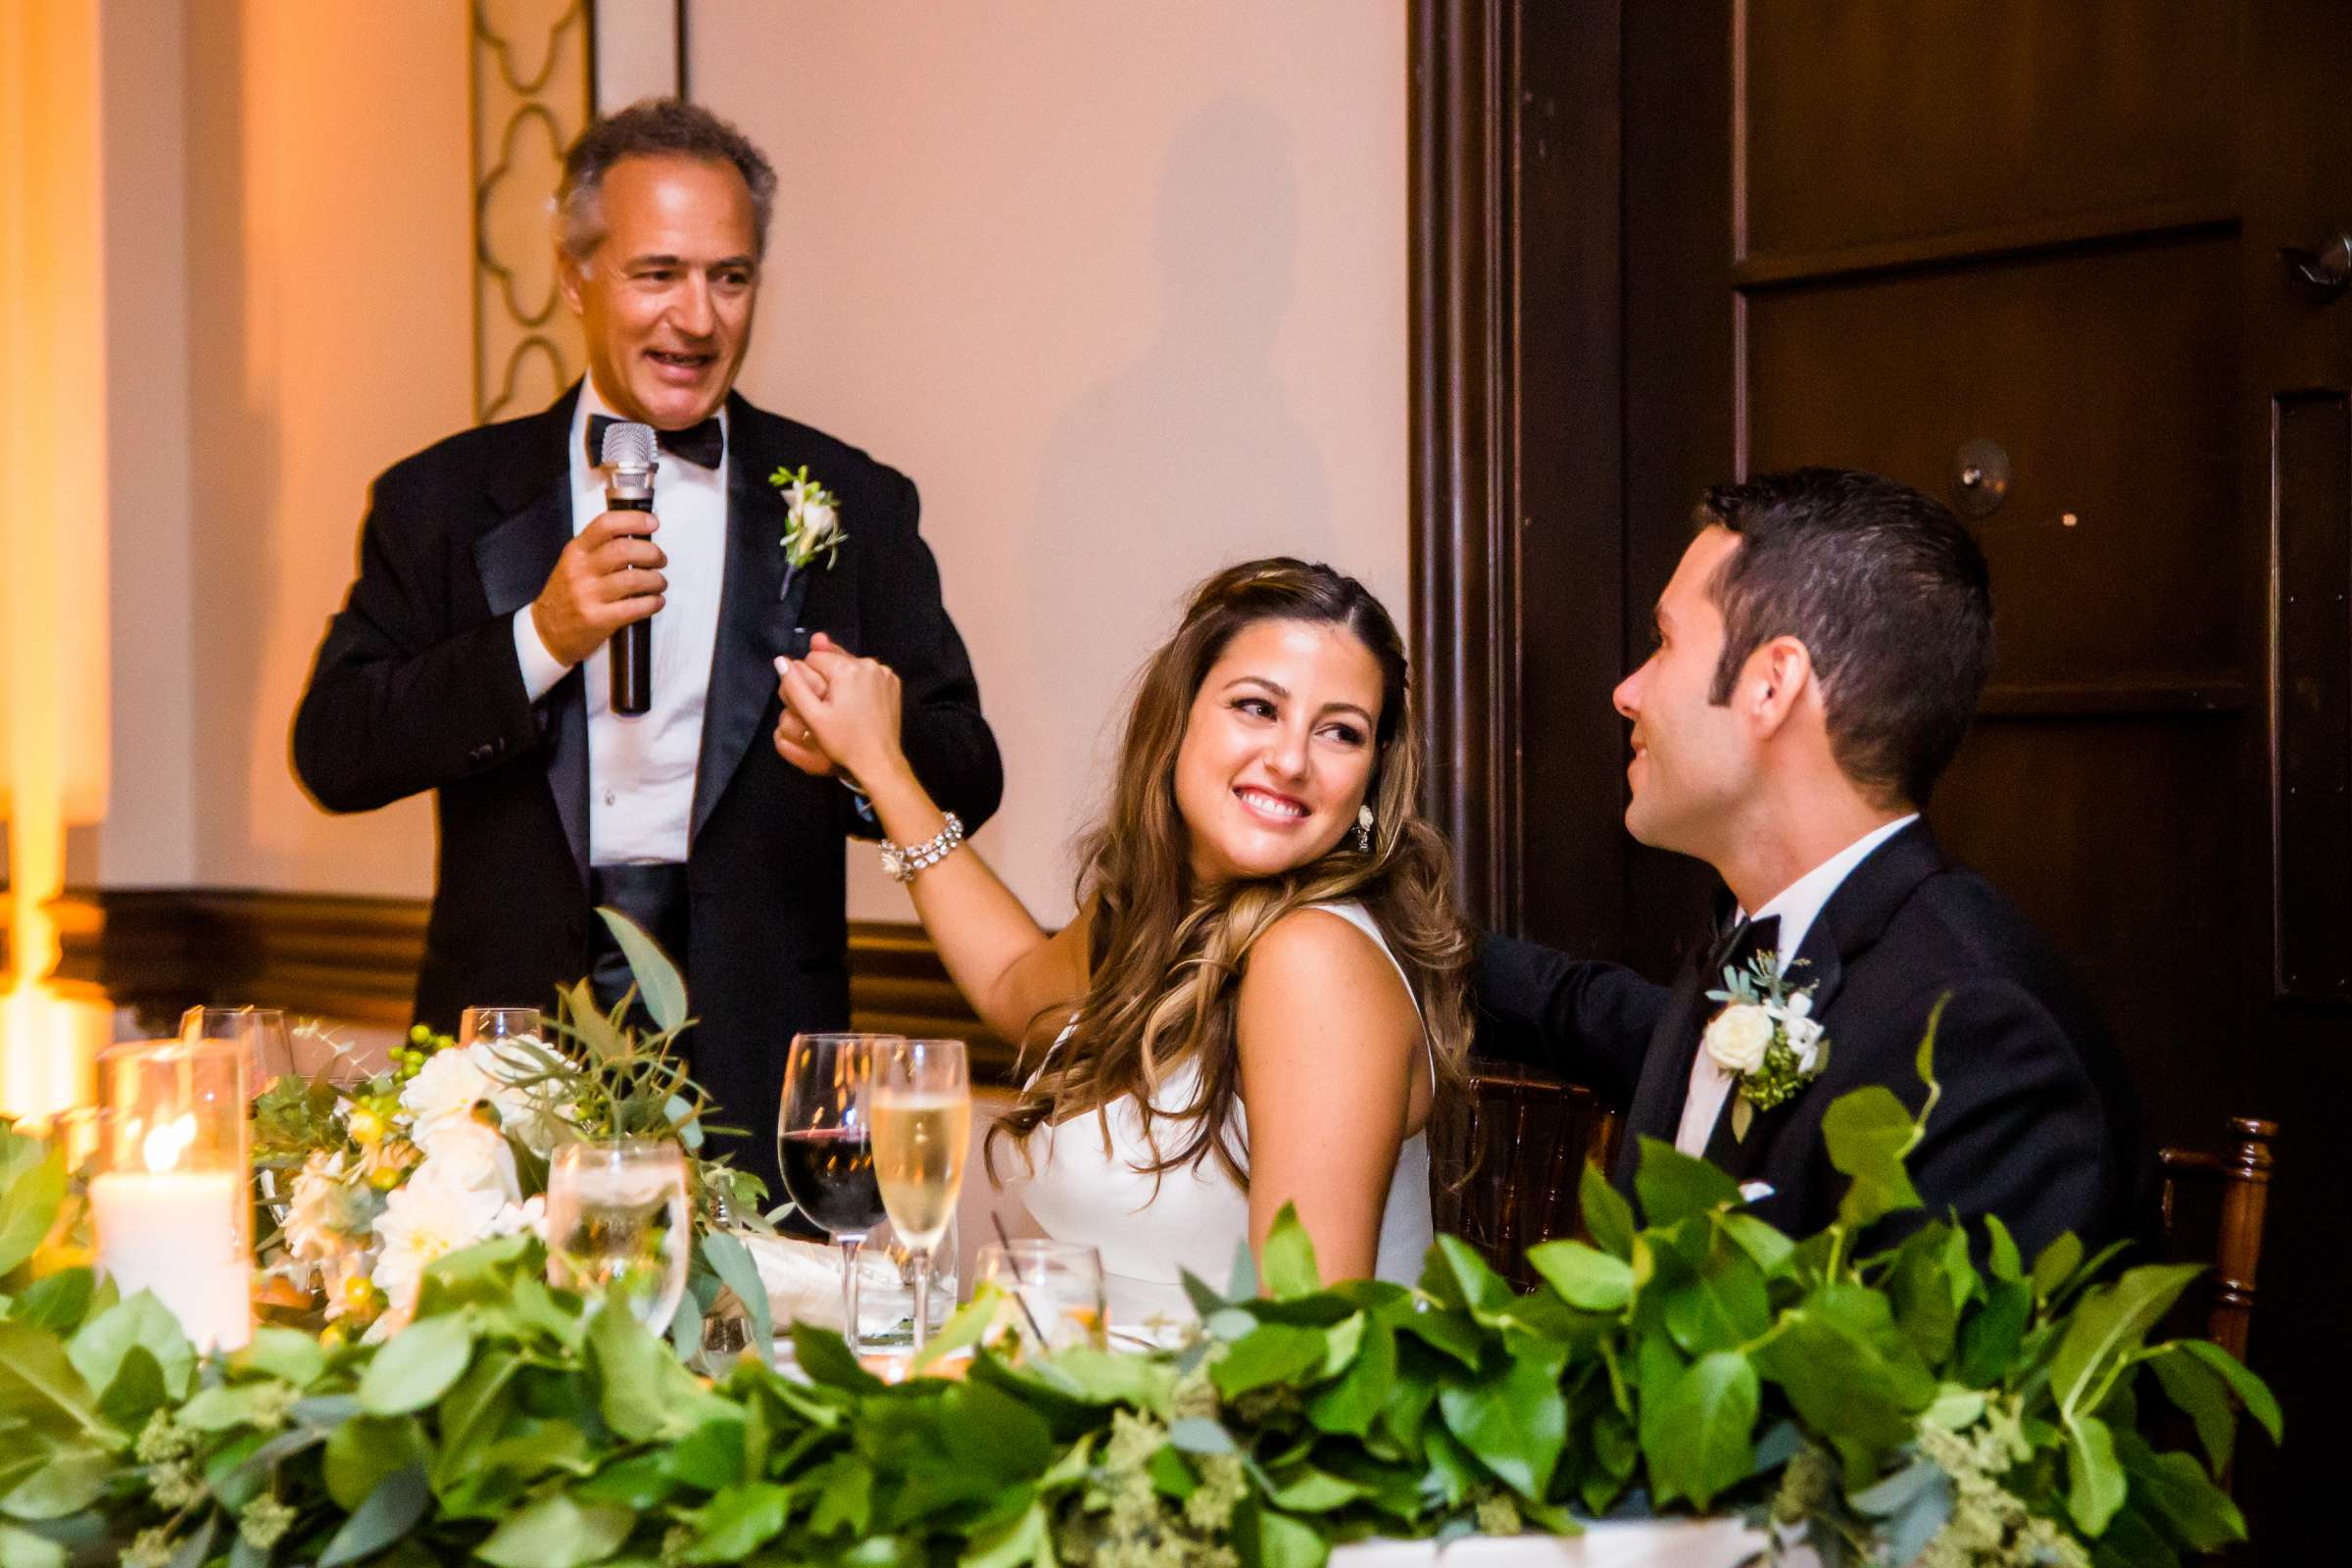 Rancho Bernardo Inn Wedding coordinated by Très Chic Events, Stefania and Nicholas Wedding Photo #73 by True Photography